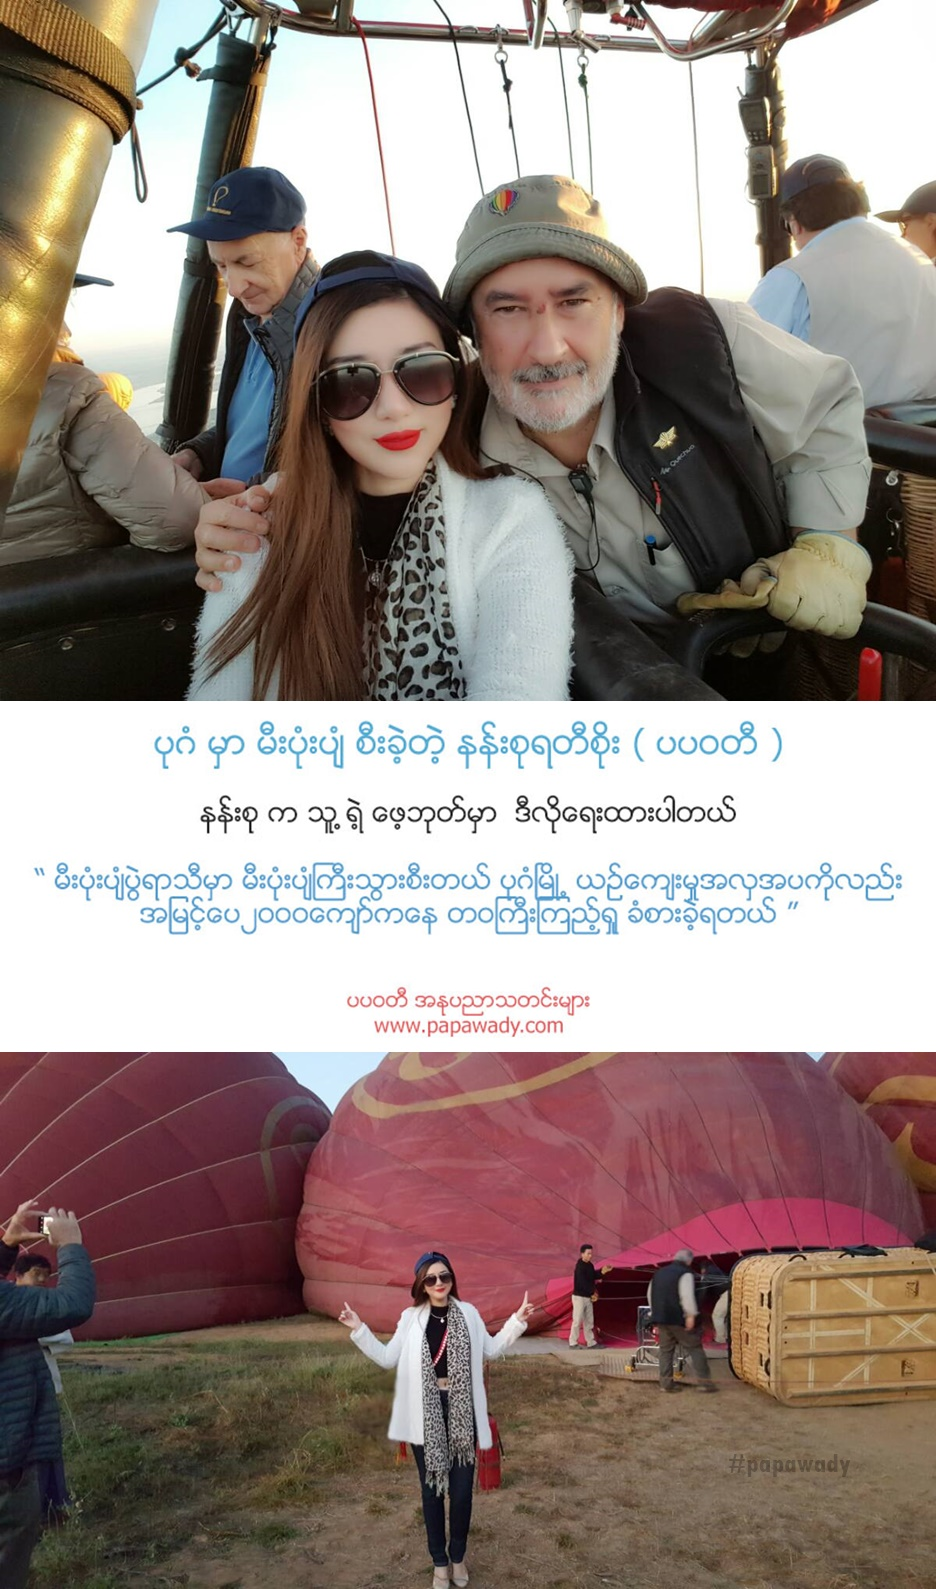 Ballons Over Bagan : Nan Su Yati Soe shares her amazing moment around in Bagan